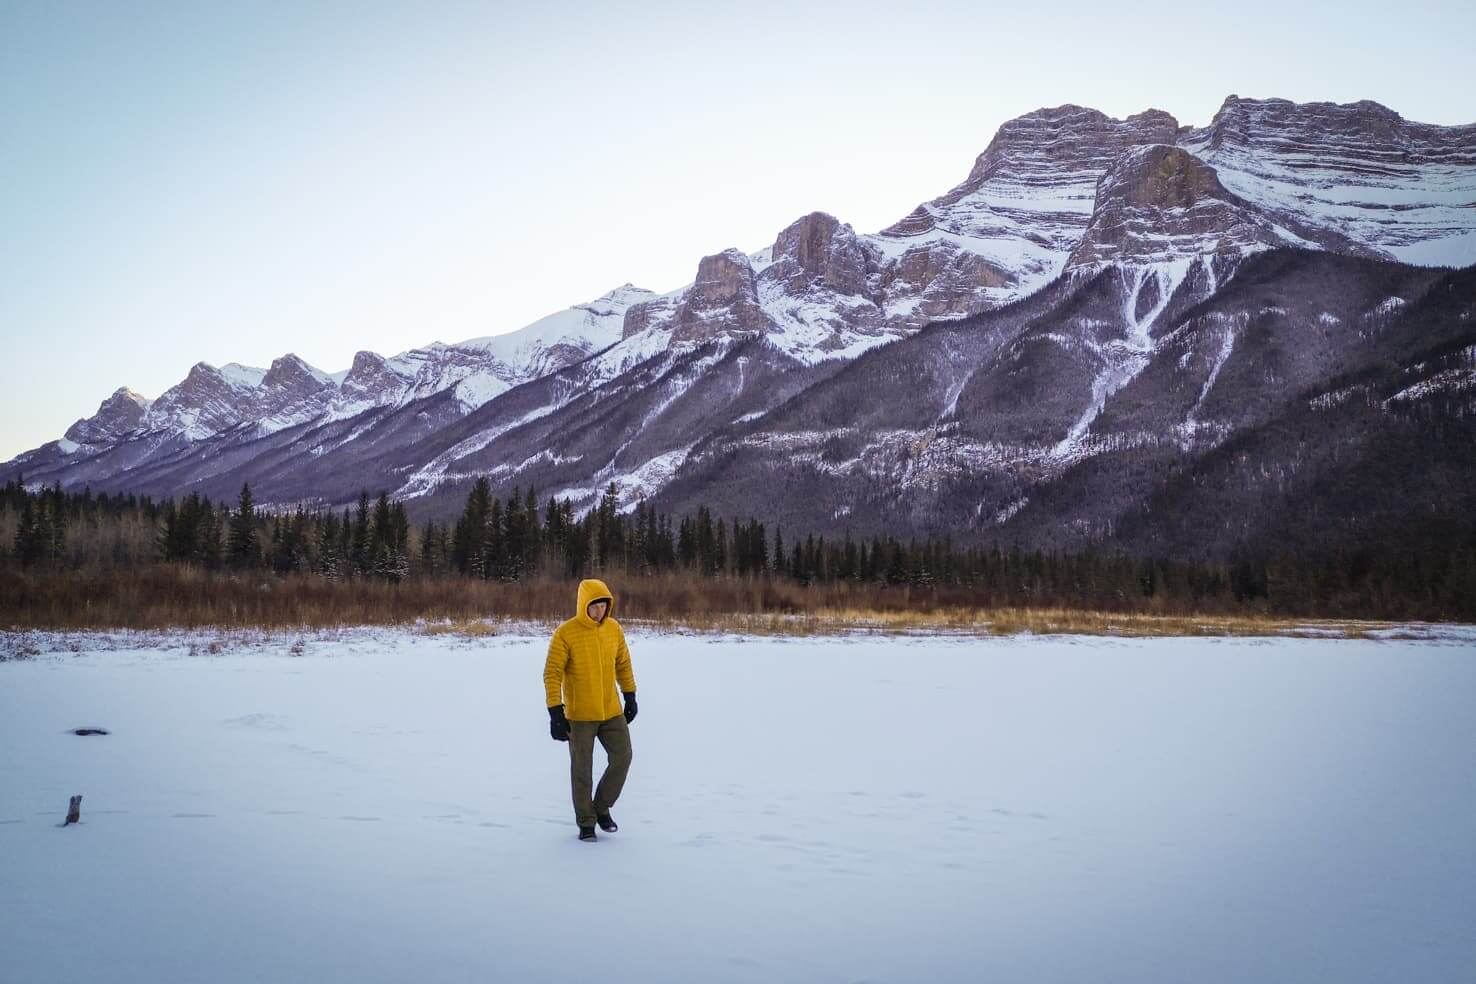 Ice skating in Banff National Park - Carrot Creek